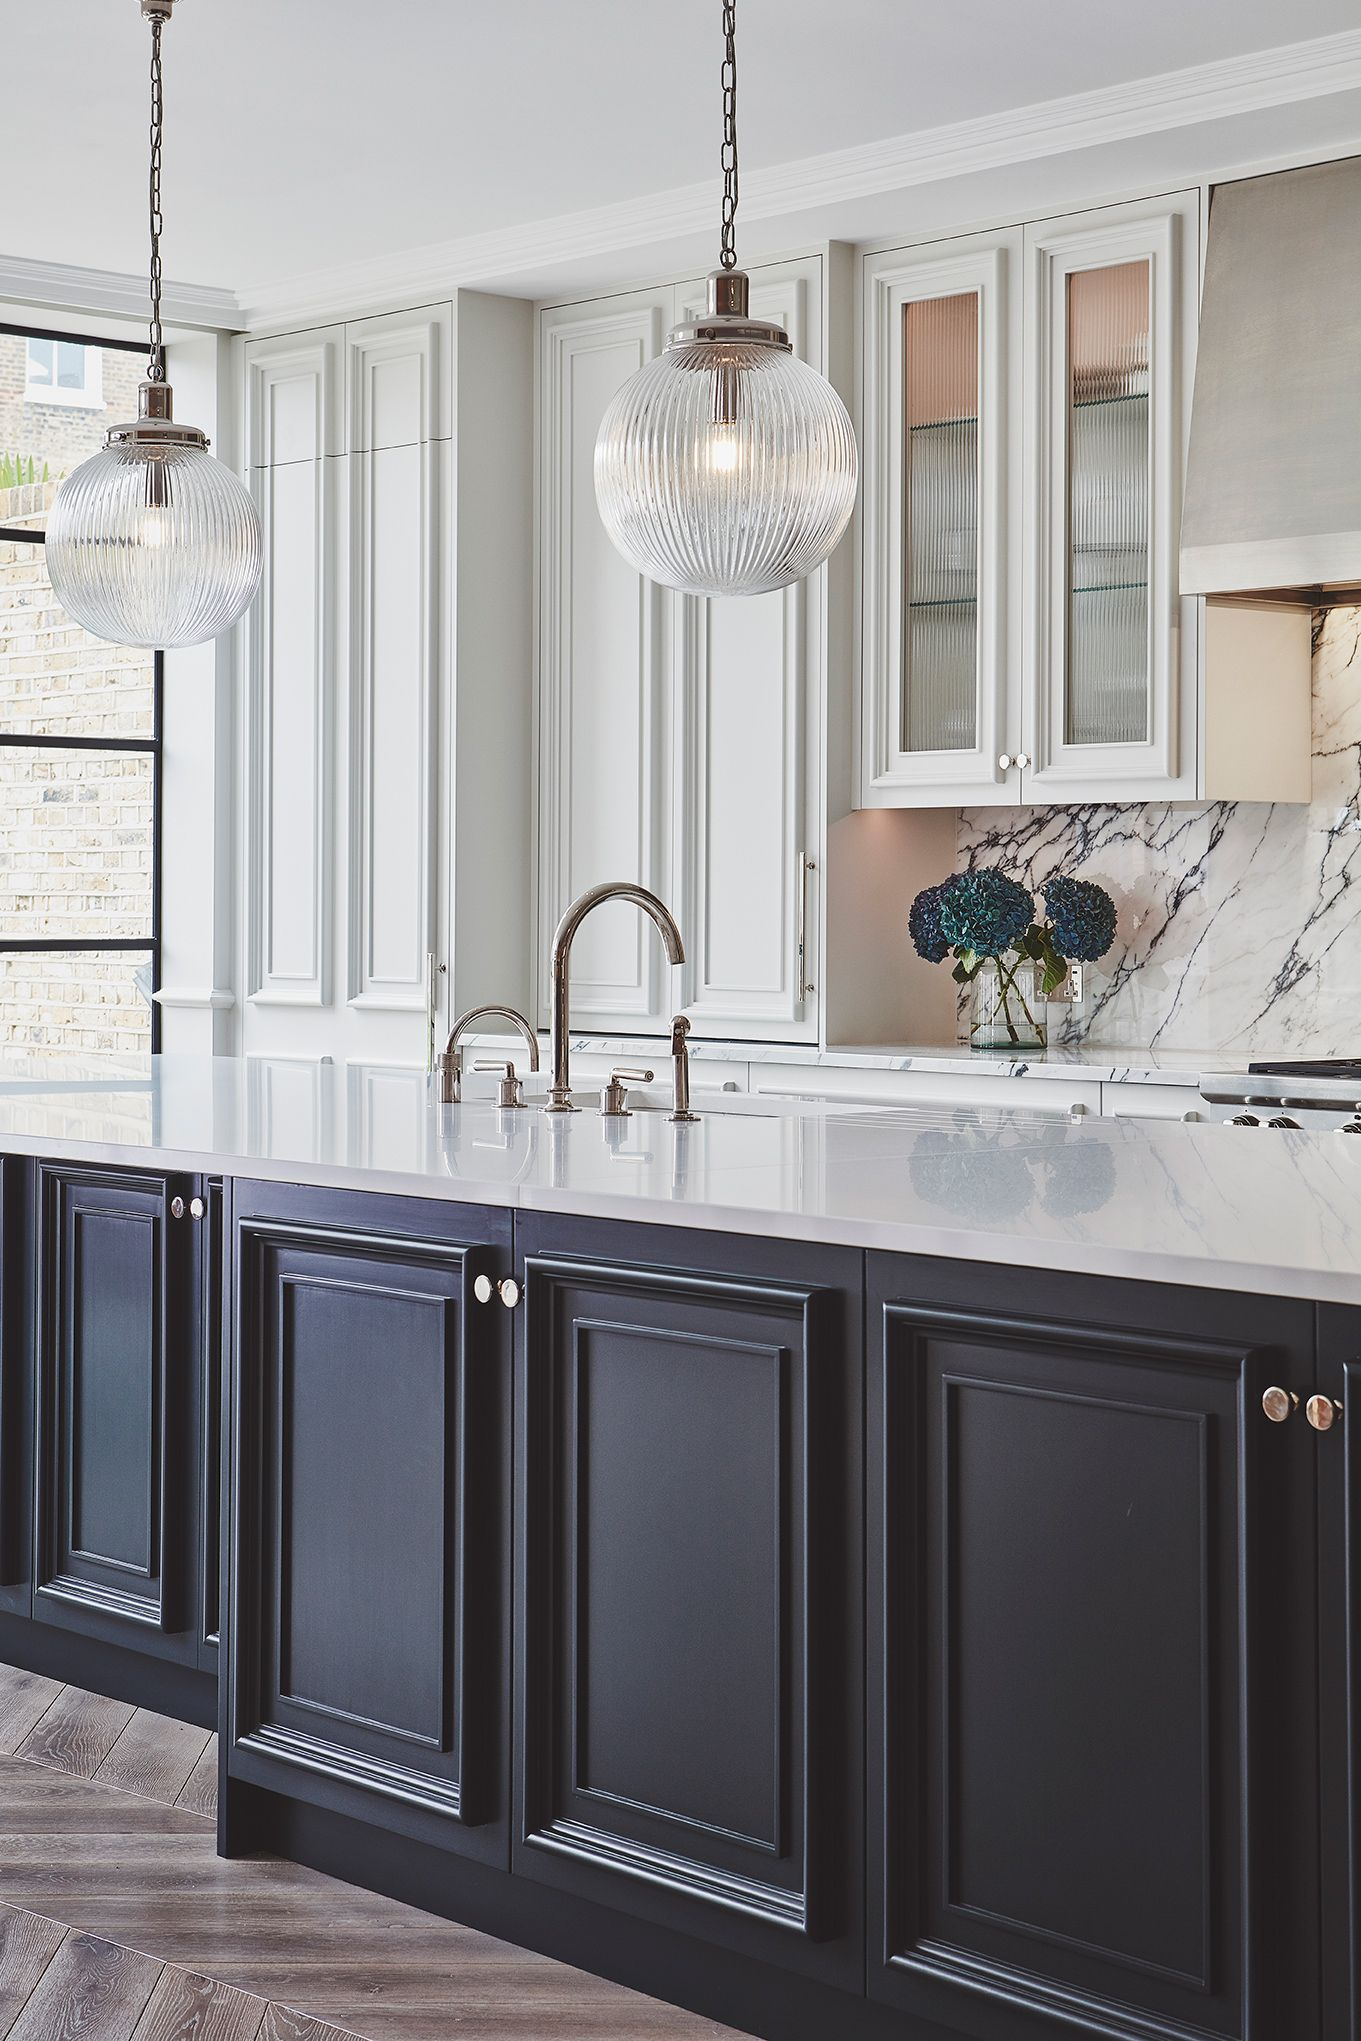 This Blakes London Kitchen Was Inspired By Our Earlier Blenheim Kitchen An Interpret Glass Kitchen Cabinets Glass Kitchen Cabinet Doors Black Kitchen Cabinets